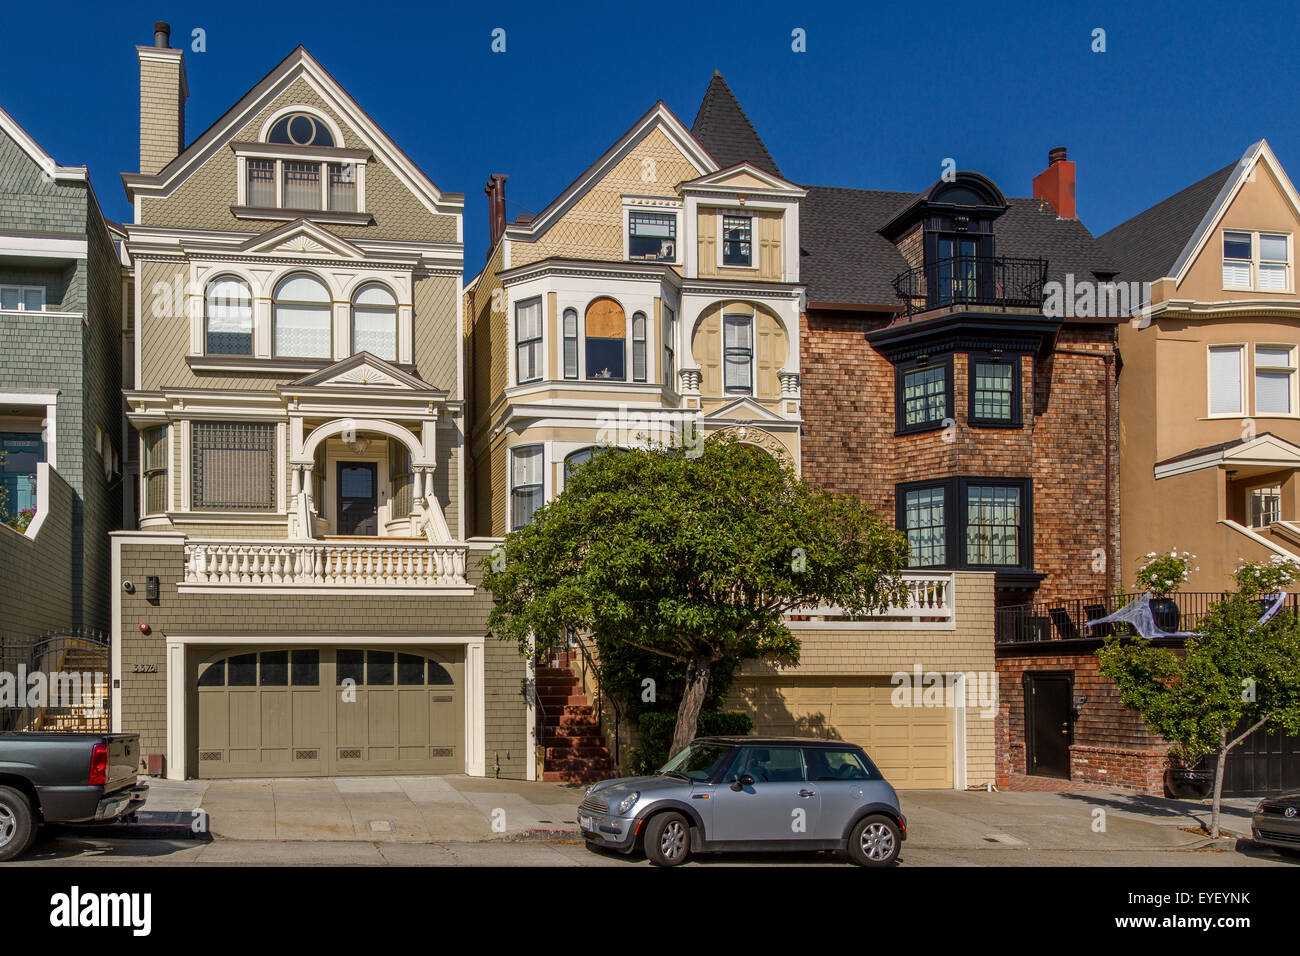 Luxury Homes In The Affluent Pacific Heights Area Of San Francisco  ,California ,USA